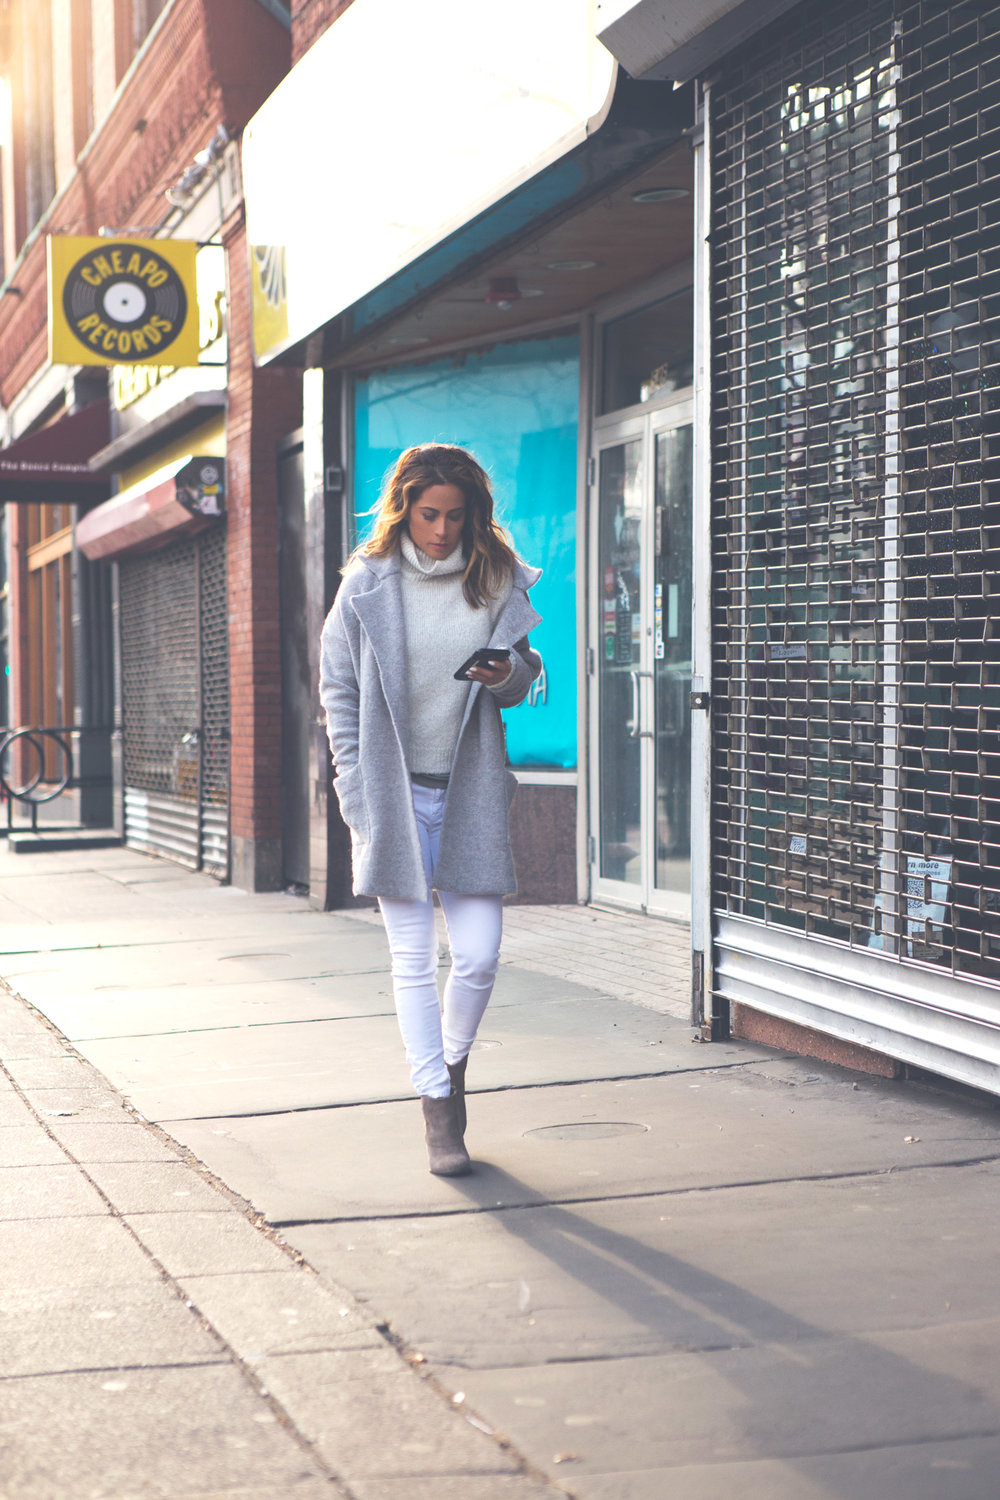 Winter Whites Wearing: Brandy Melville sweater (similar) and coat (similar), jeans, booties.